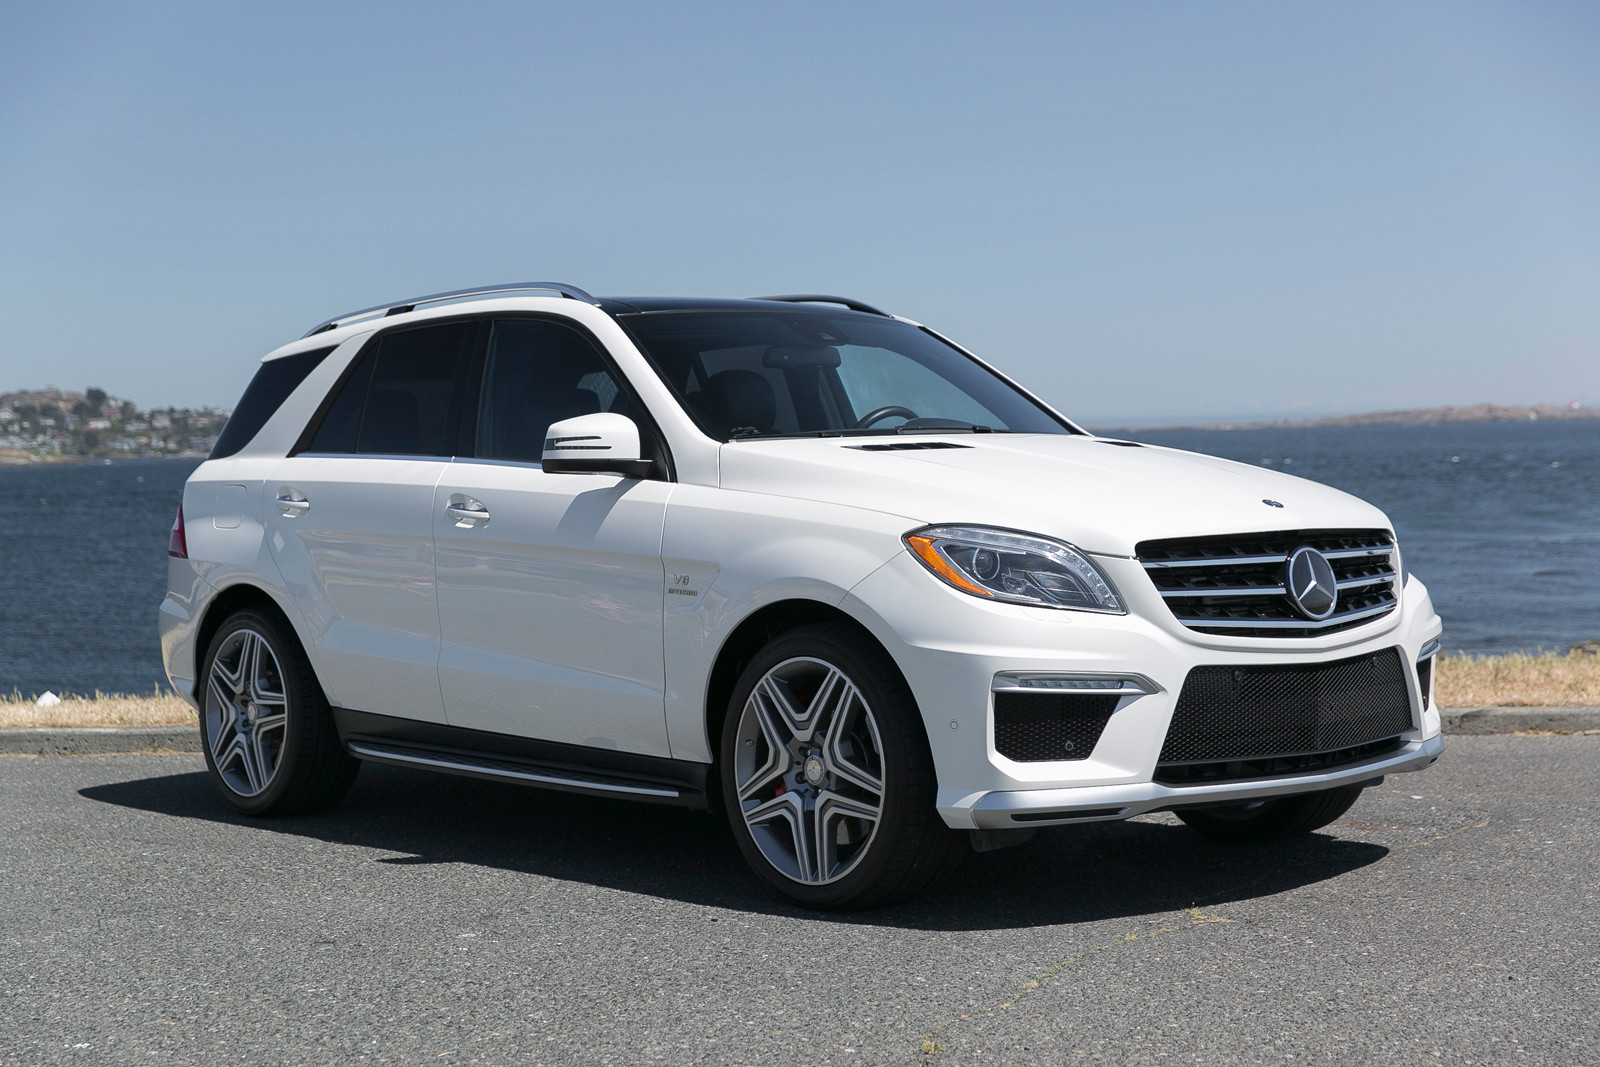 2013 mercedes benz ml63 amg silver arrow cars ltd for Mercedes benz ml 63 amg